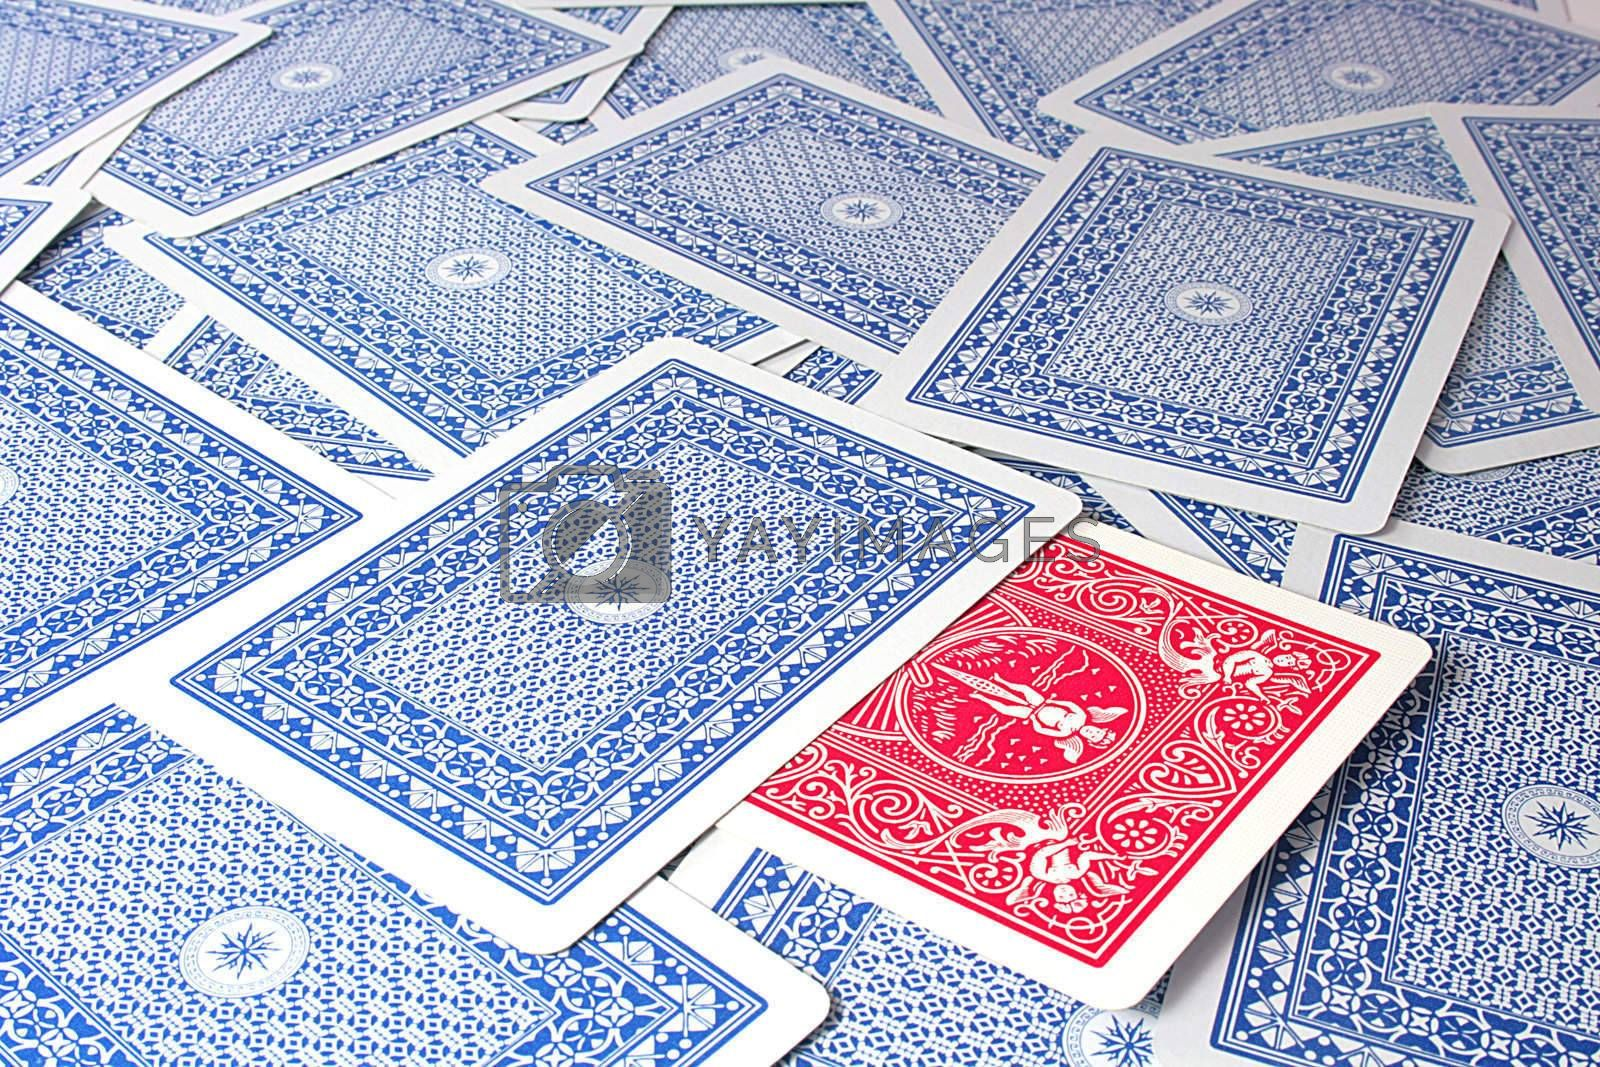 Underside playing cards with dark blue color.